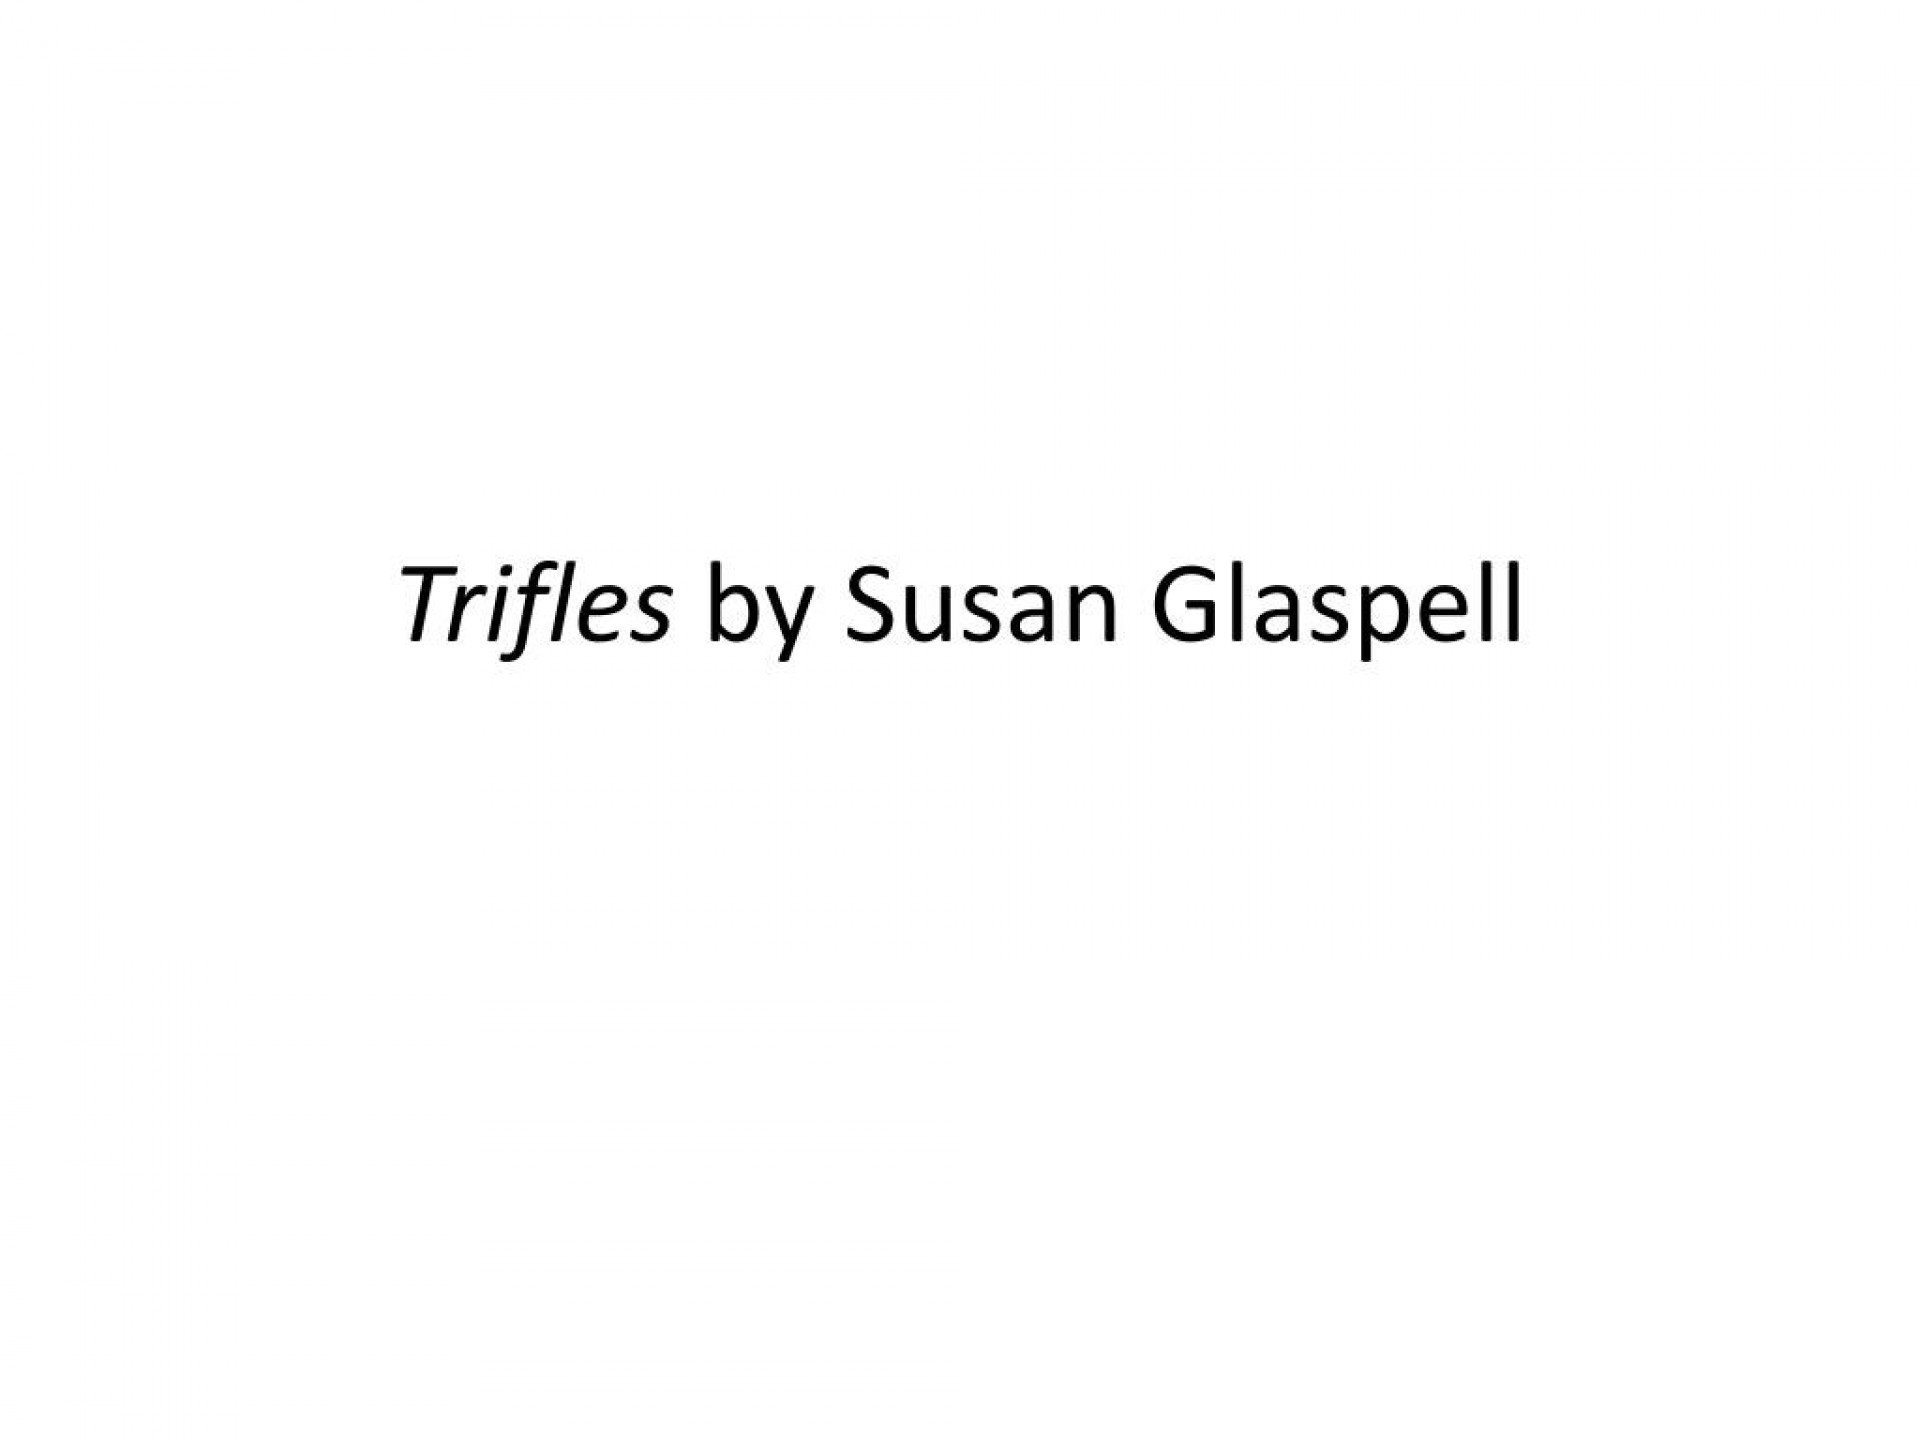 015 Trifles By Susan Glaspell L Essay Formidable Topics Feminism 1920